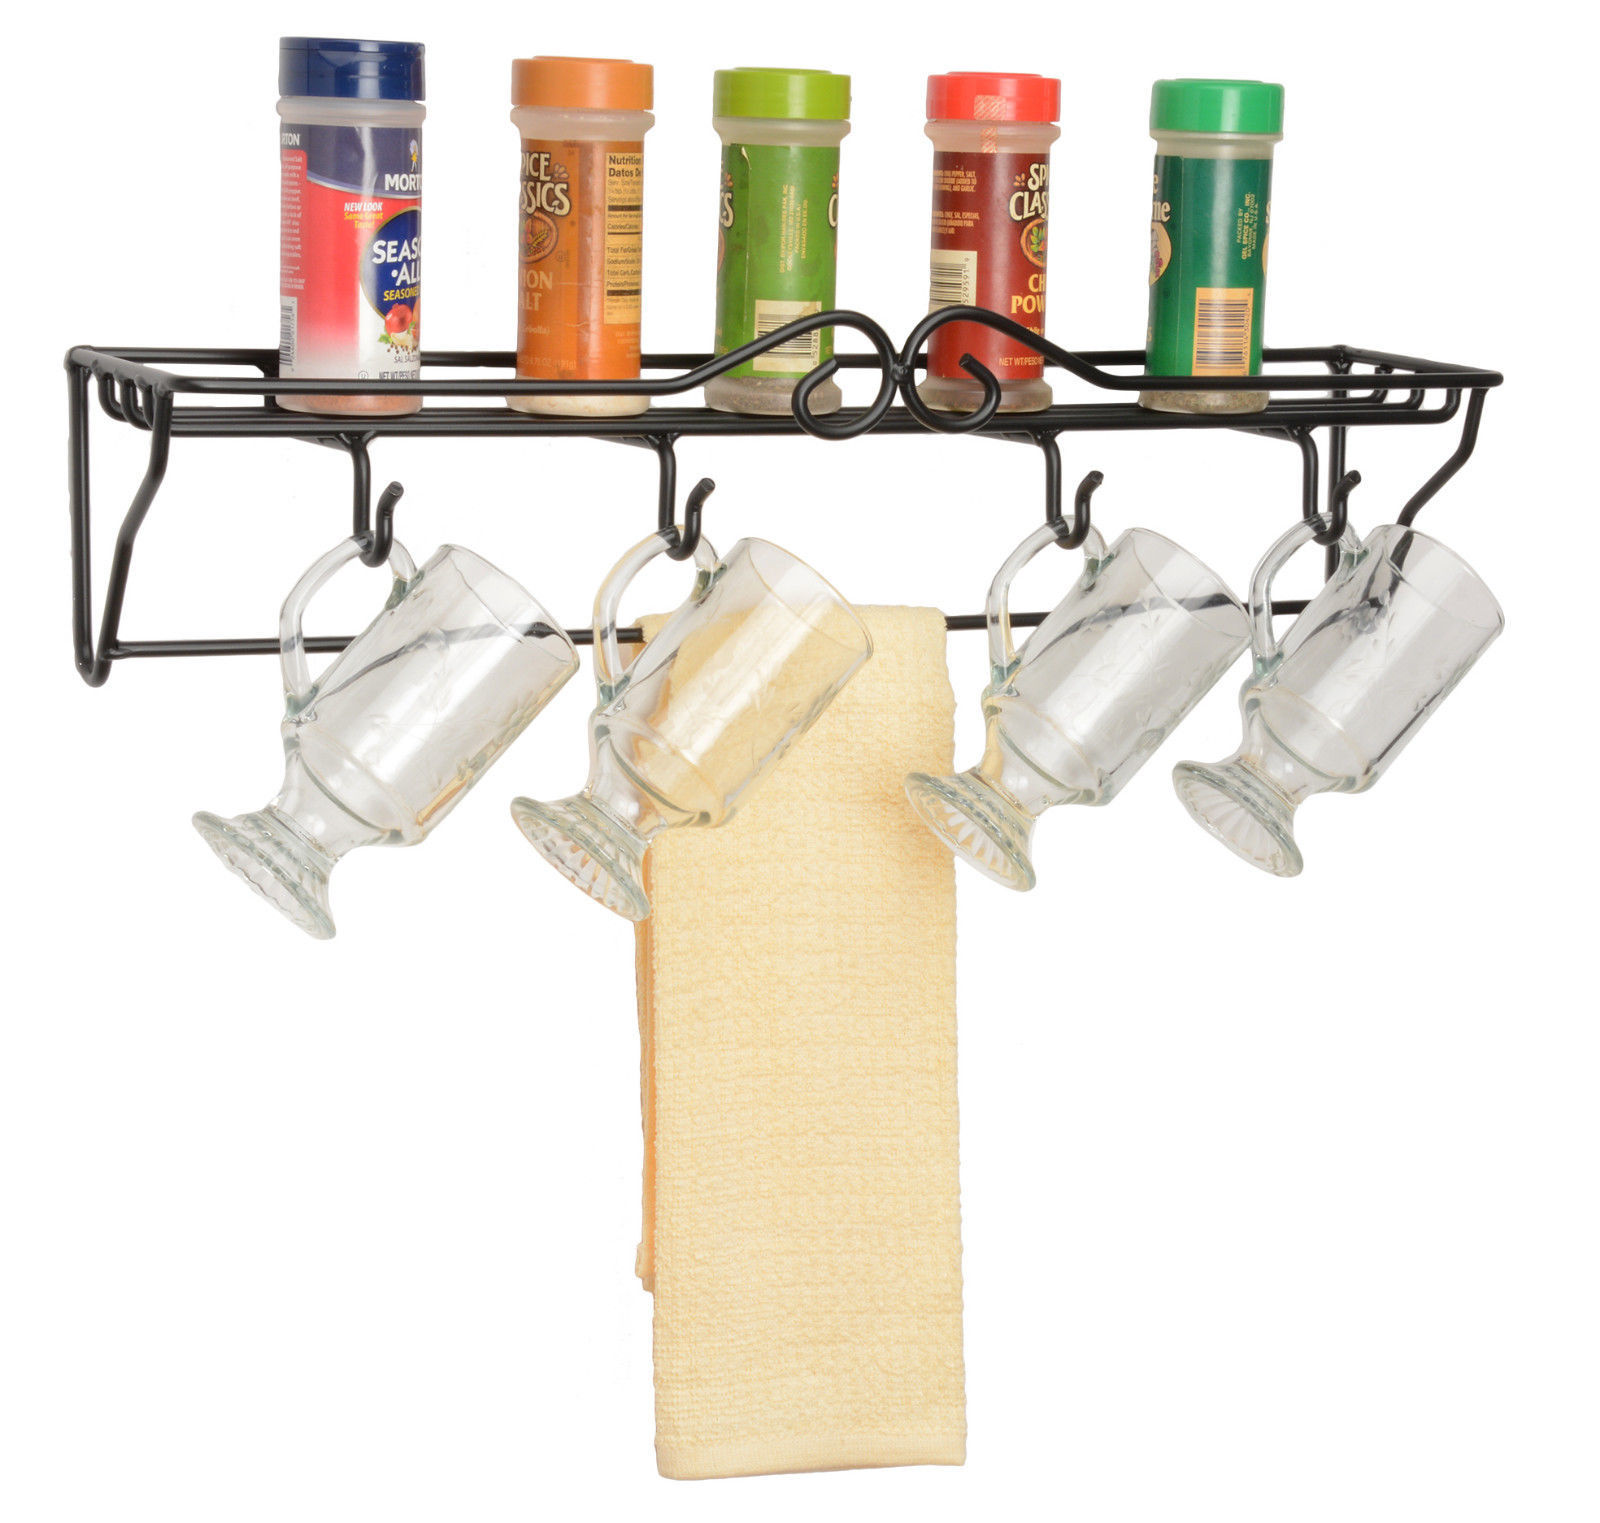 Primary image for 4 MUG SINGLE SHELF RACK - Wrought Iron Wall Coffee Cup Towel Holder USA Amish